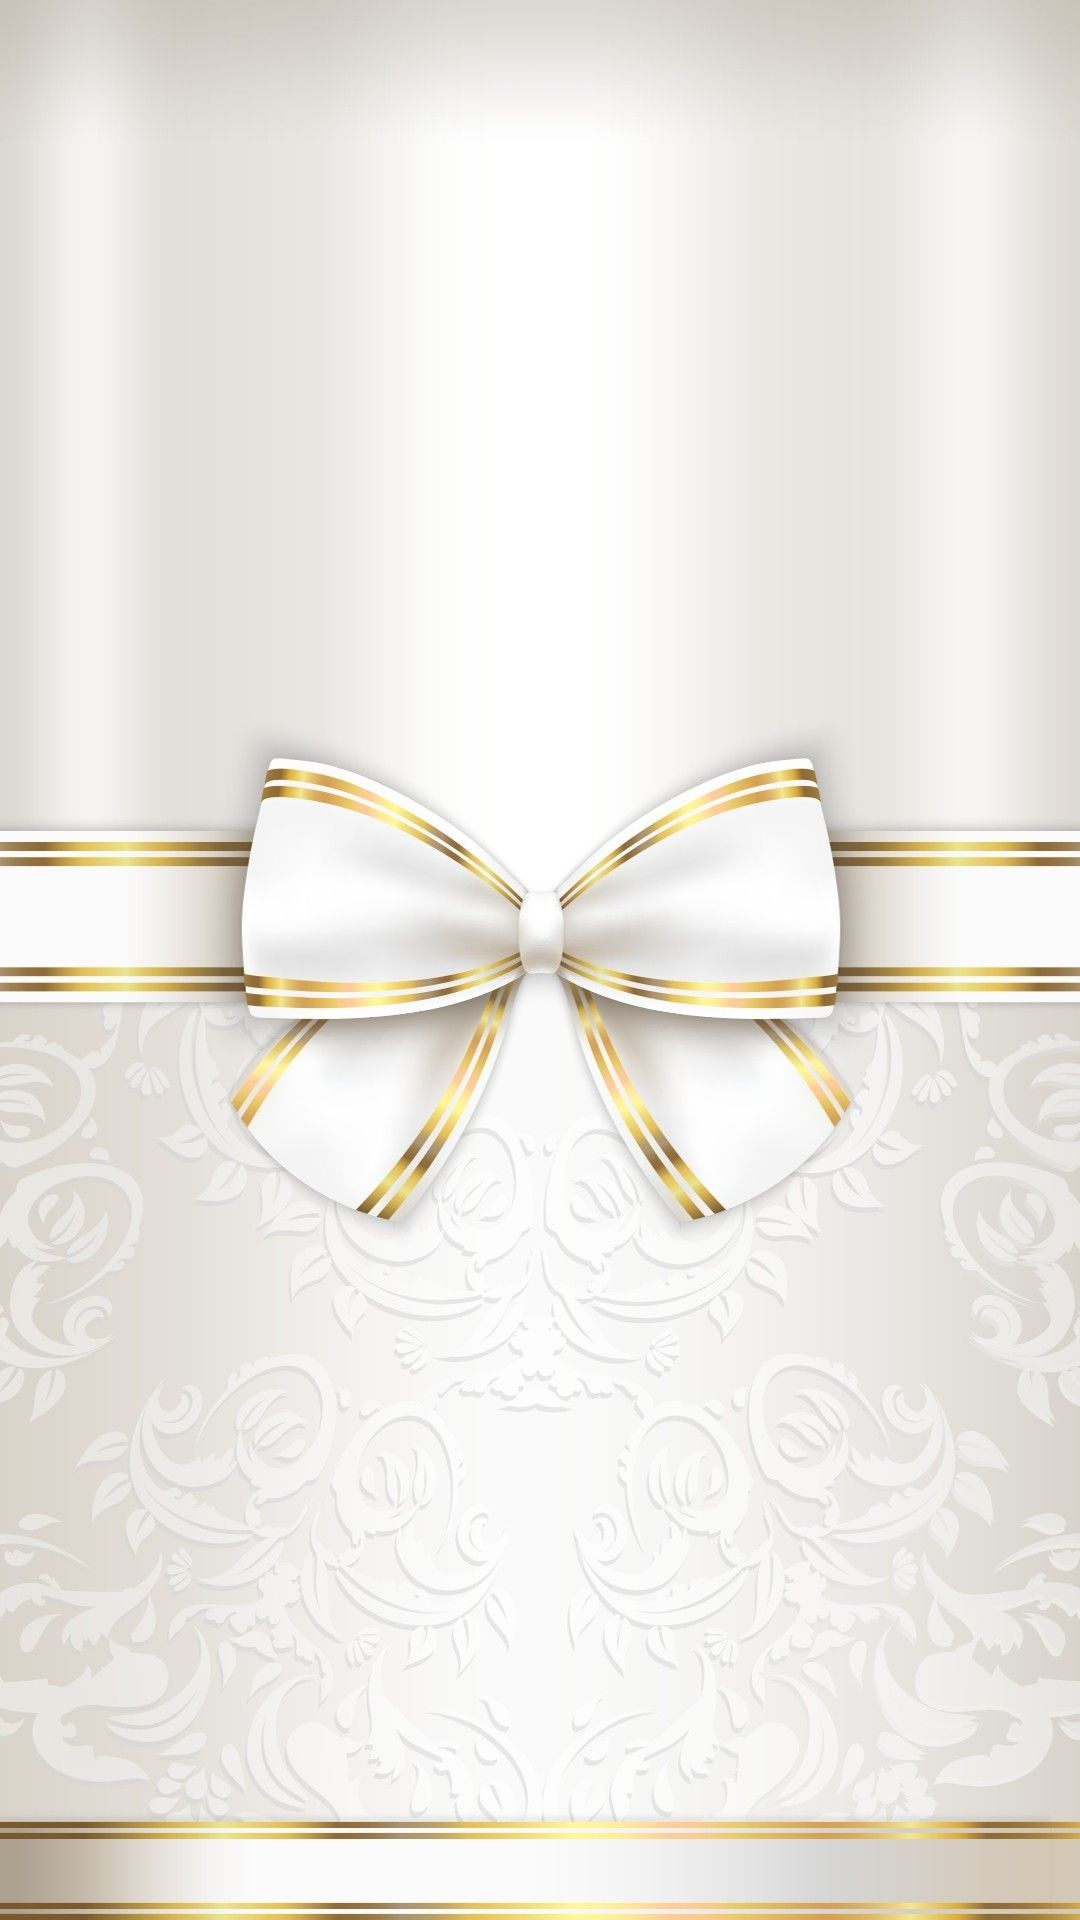 Gold and white ivory cream in 2019 | Bow wallpaper, Bling ...